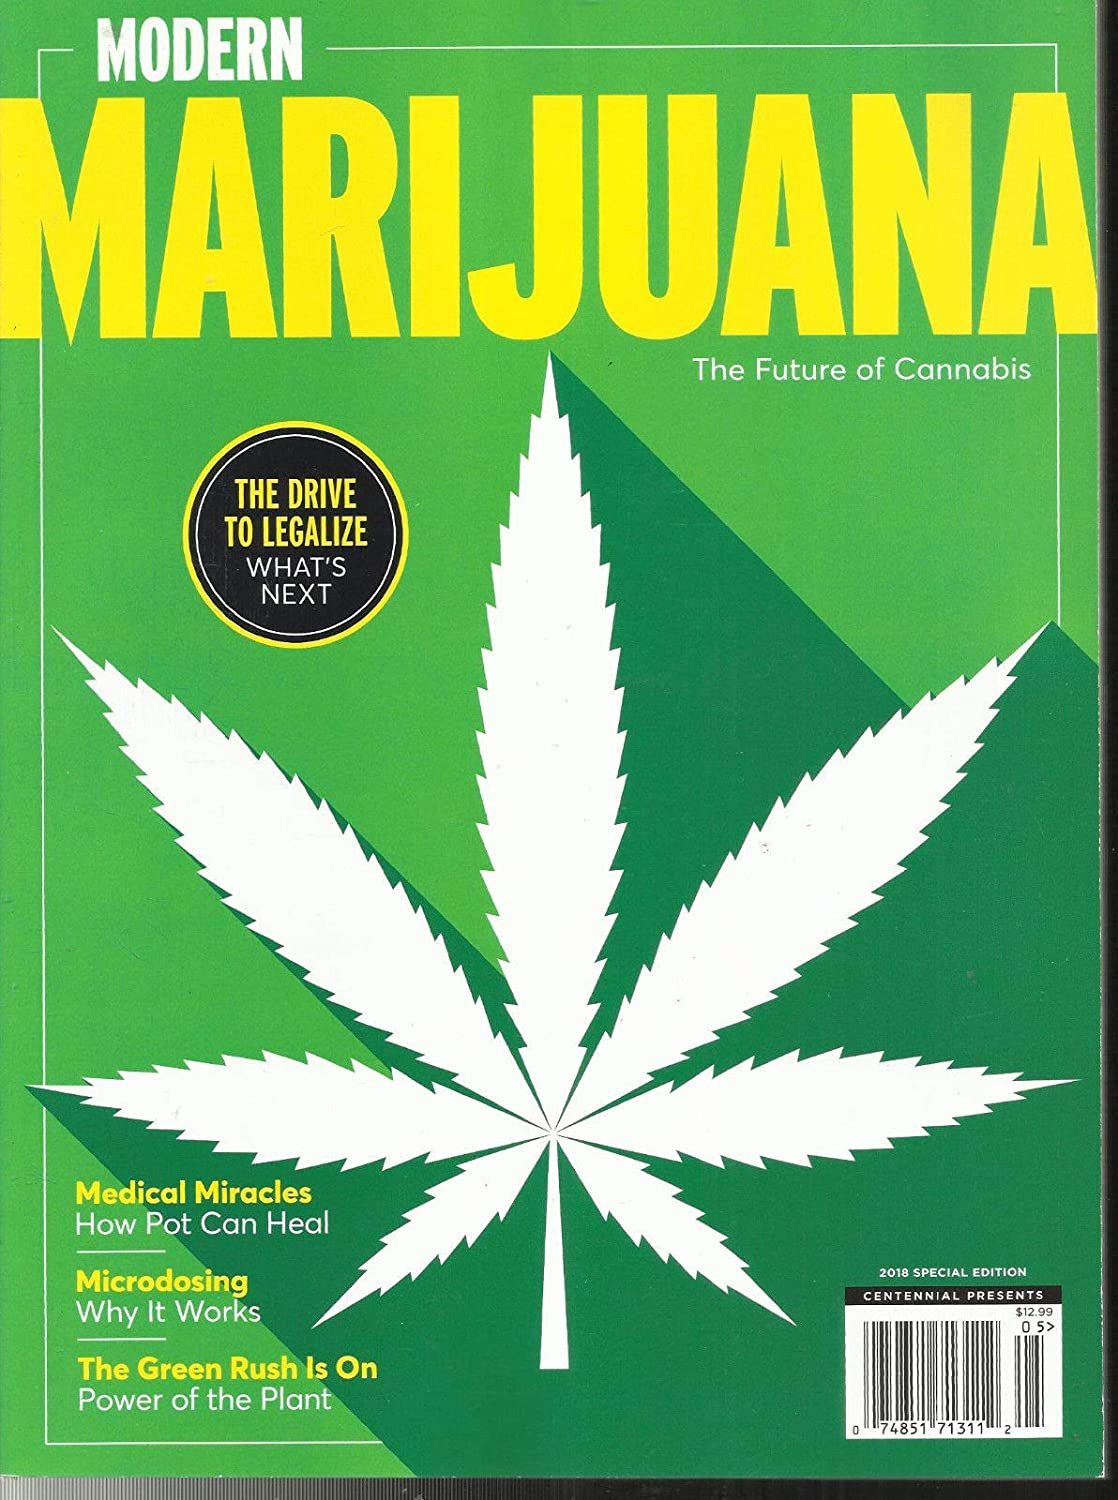 MODERN MARIJUANA MAGAZINE THE FUTURE OF CANNABIS, 2018 SPECIAL EDITION s3457